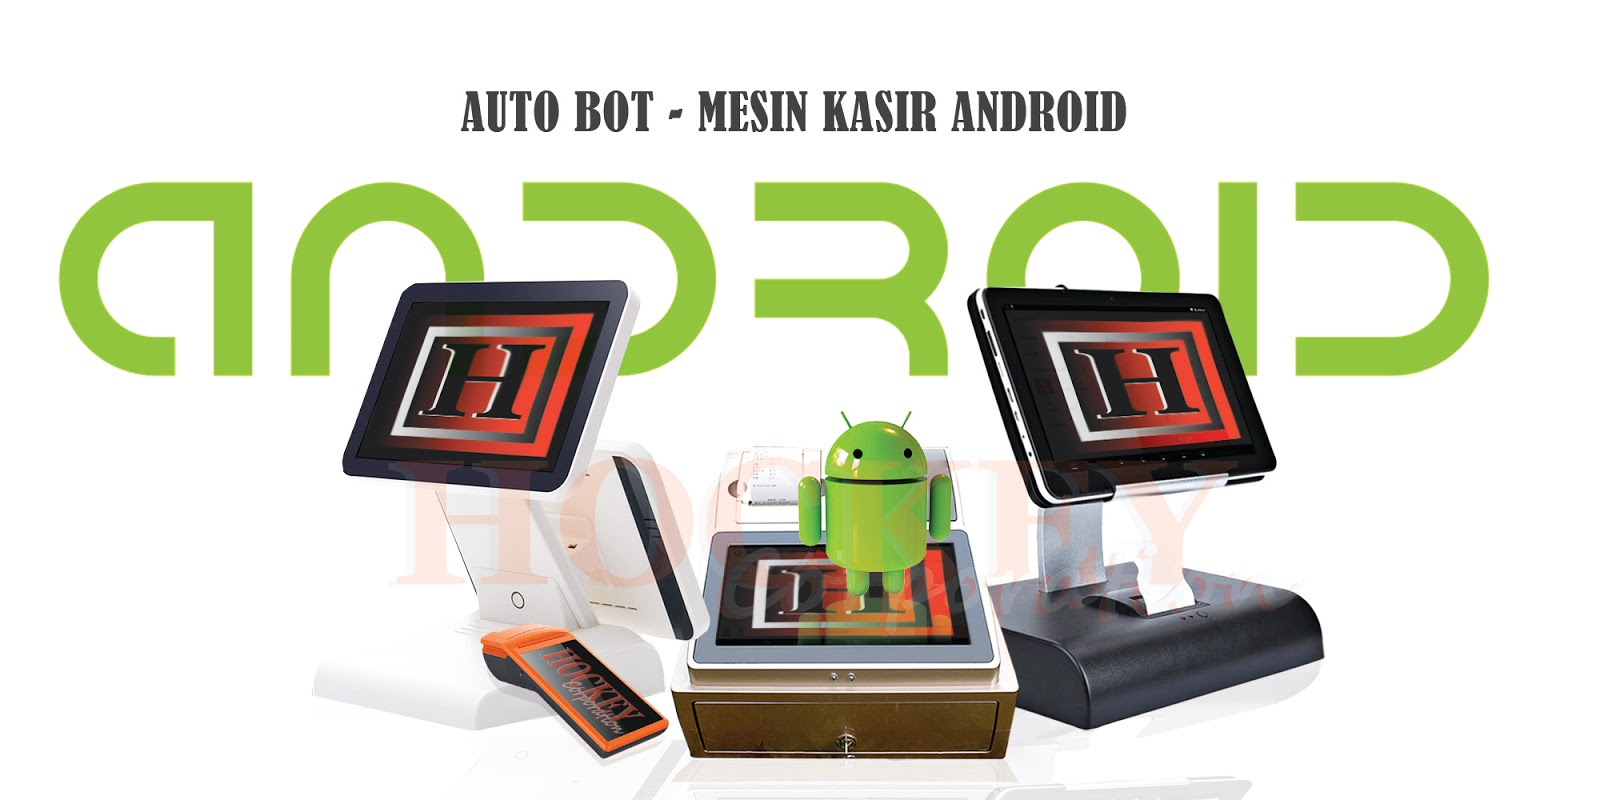 mesin kasir,portable,android,online,cloud,software